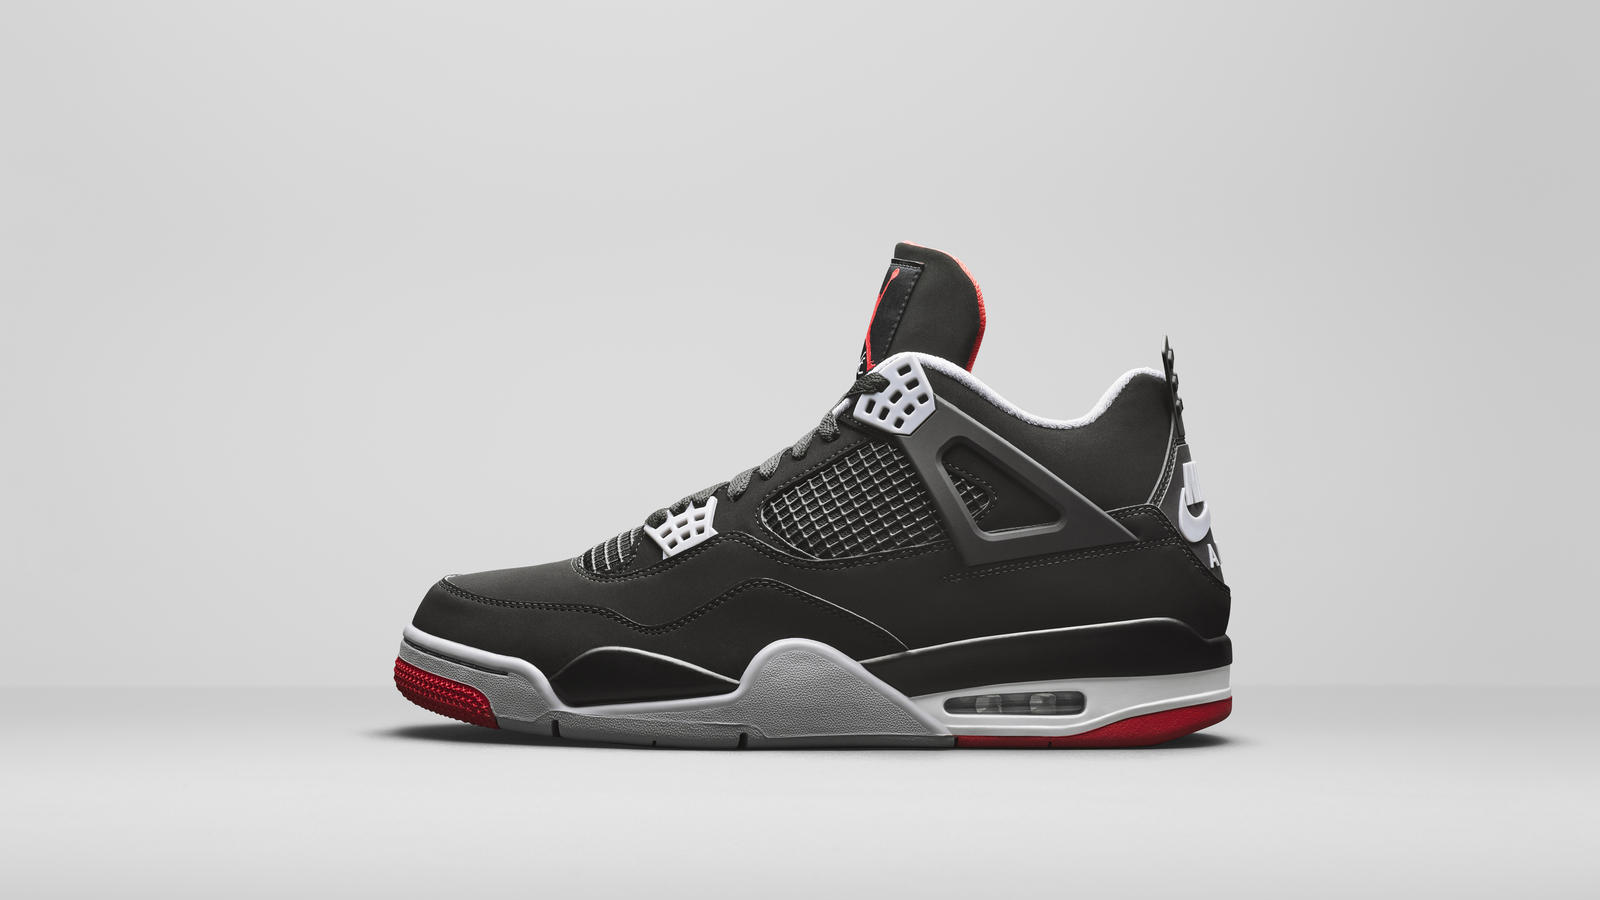 a978c7a28ea394 Air Jordan 4 Bred Official Images and Release Date - Nike News